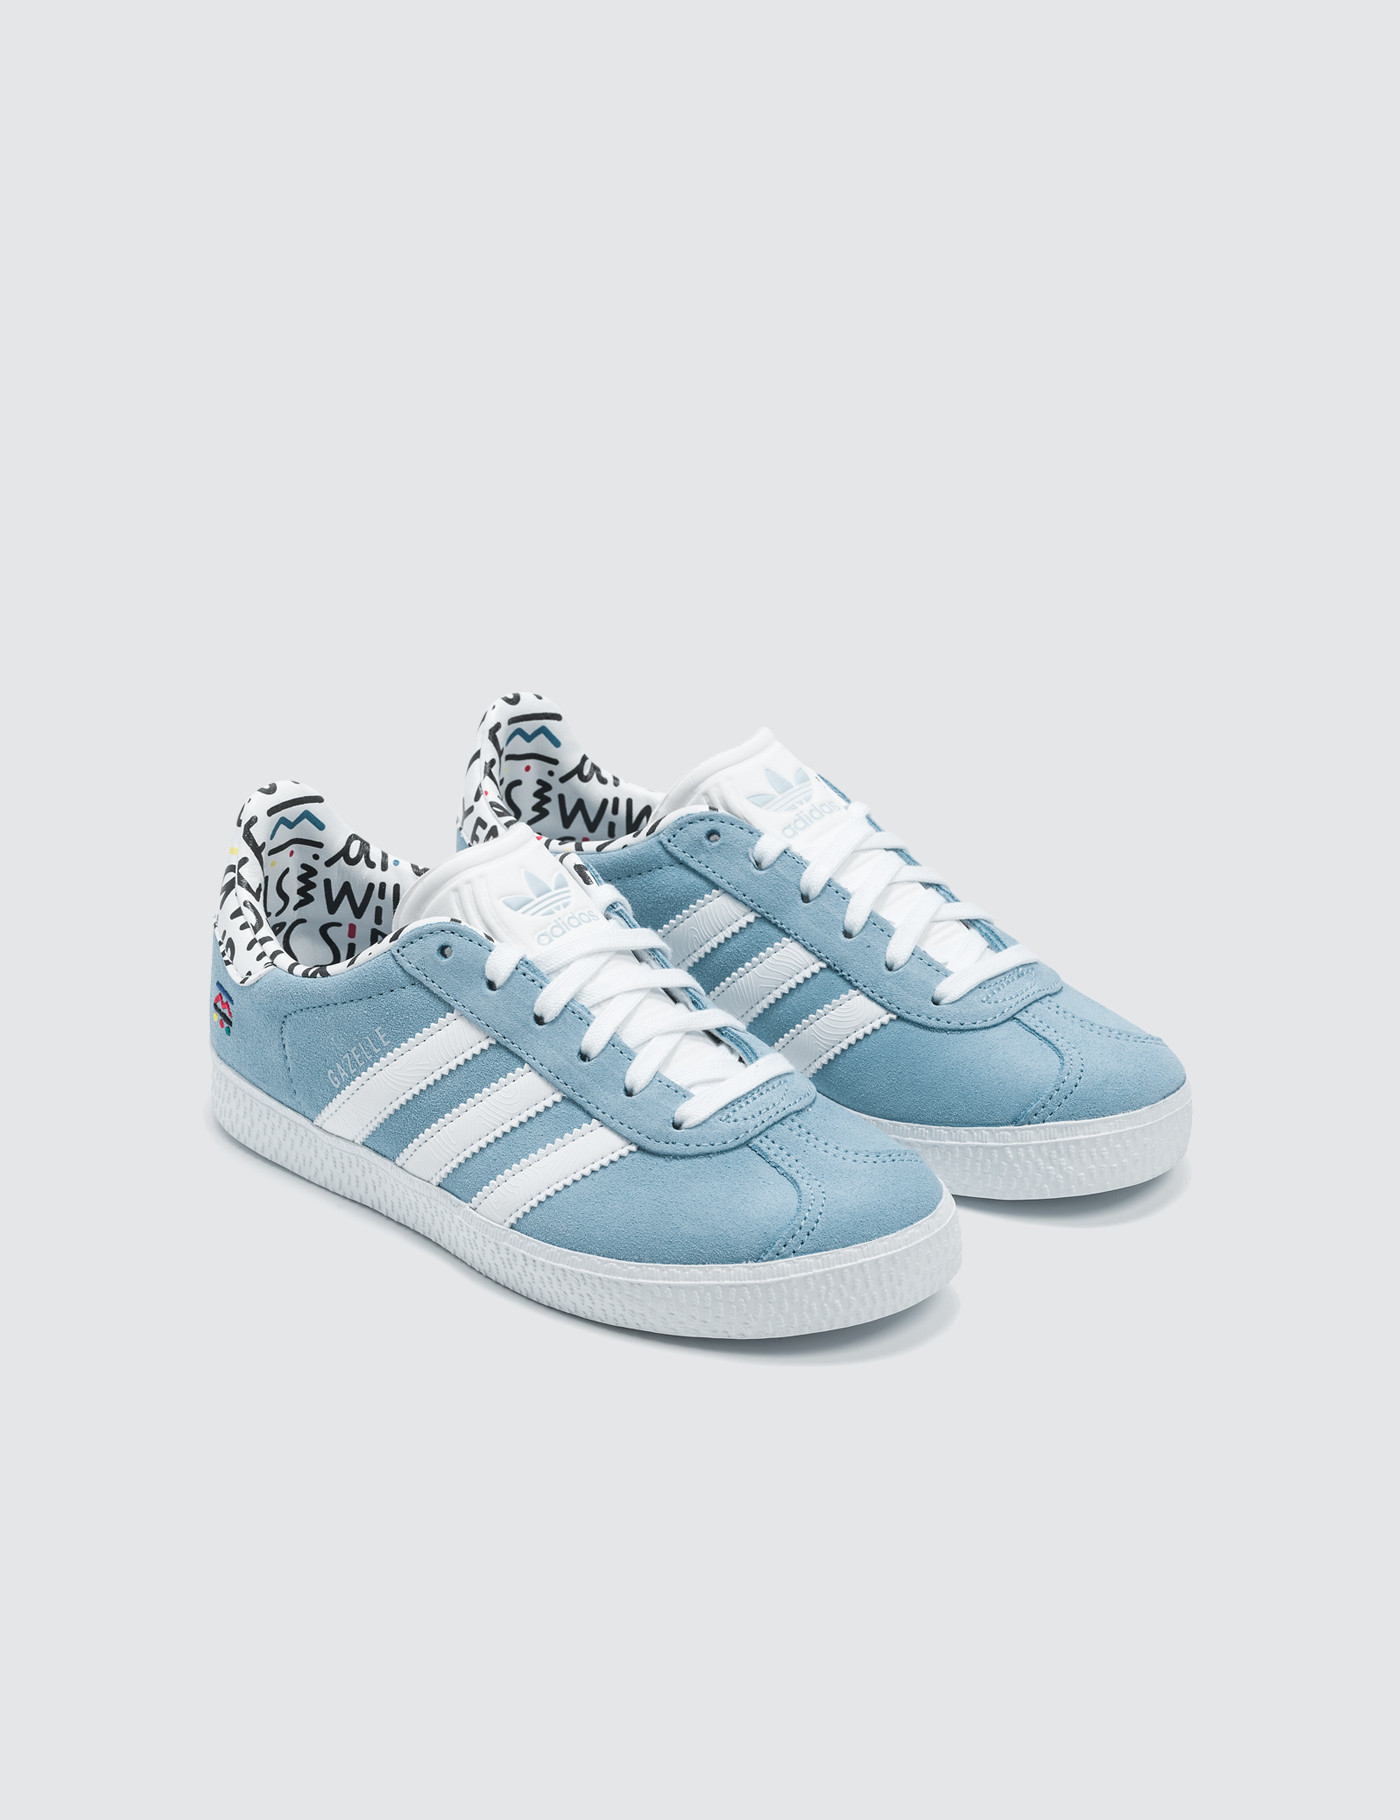 Adidas Originals Gazelle Children